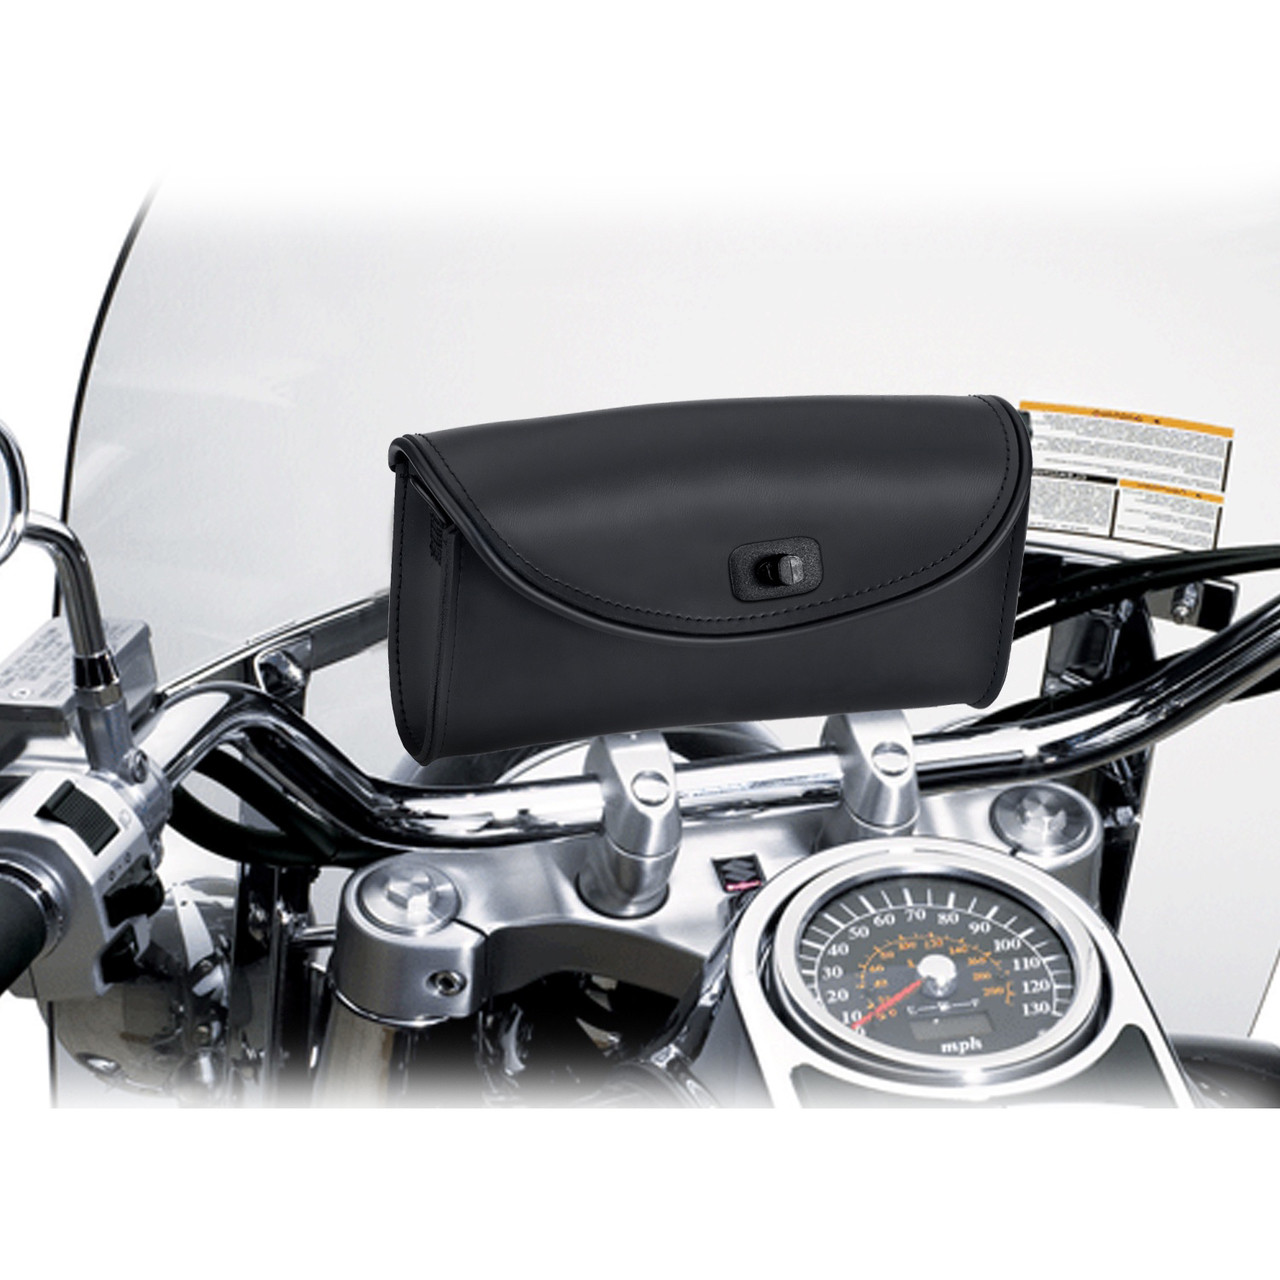 Large Detachable Motorcycle Windshield Bag In Front of Bike View